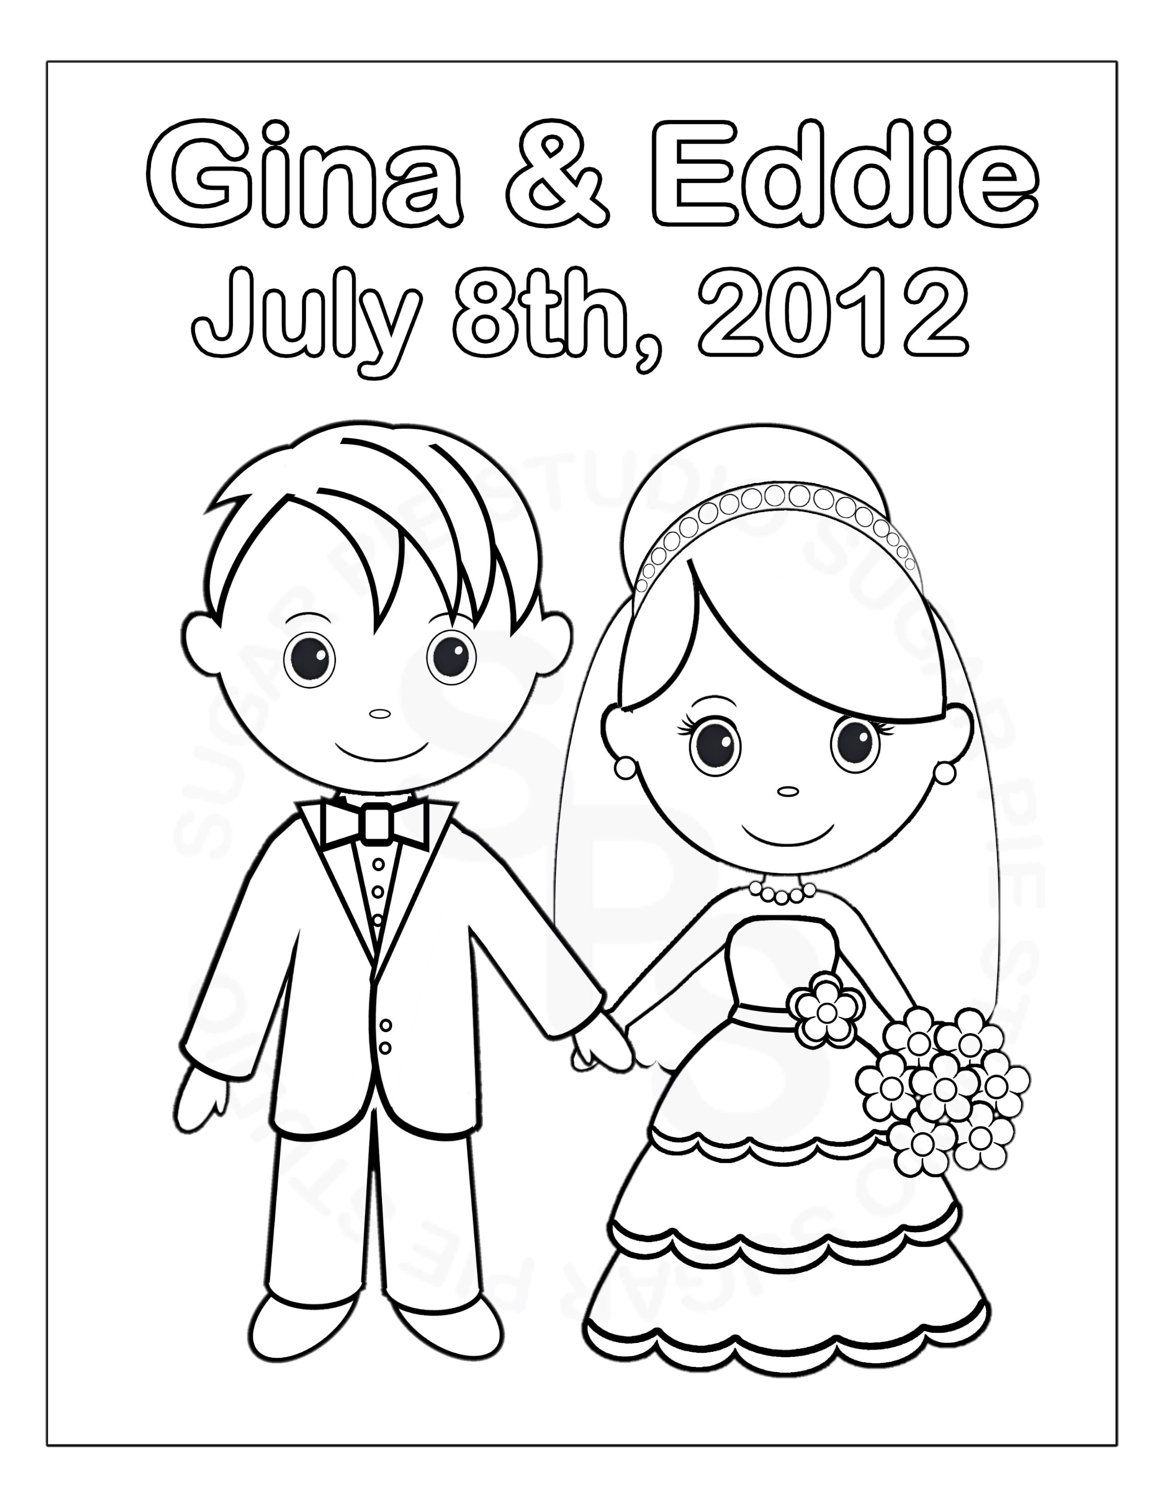 Personalized printable bride groom wedding party favor childrens personalized printable bride groom wedding party favor childrens kids coloring page activity pdf or jpeg file 200 via etsy altavistaventures